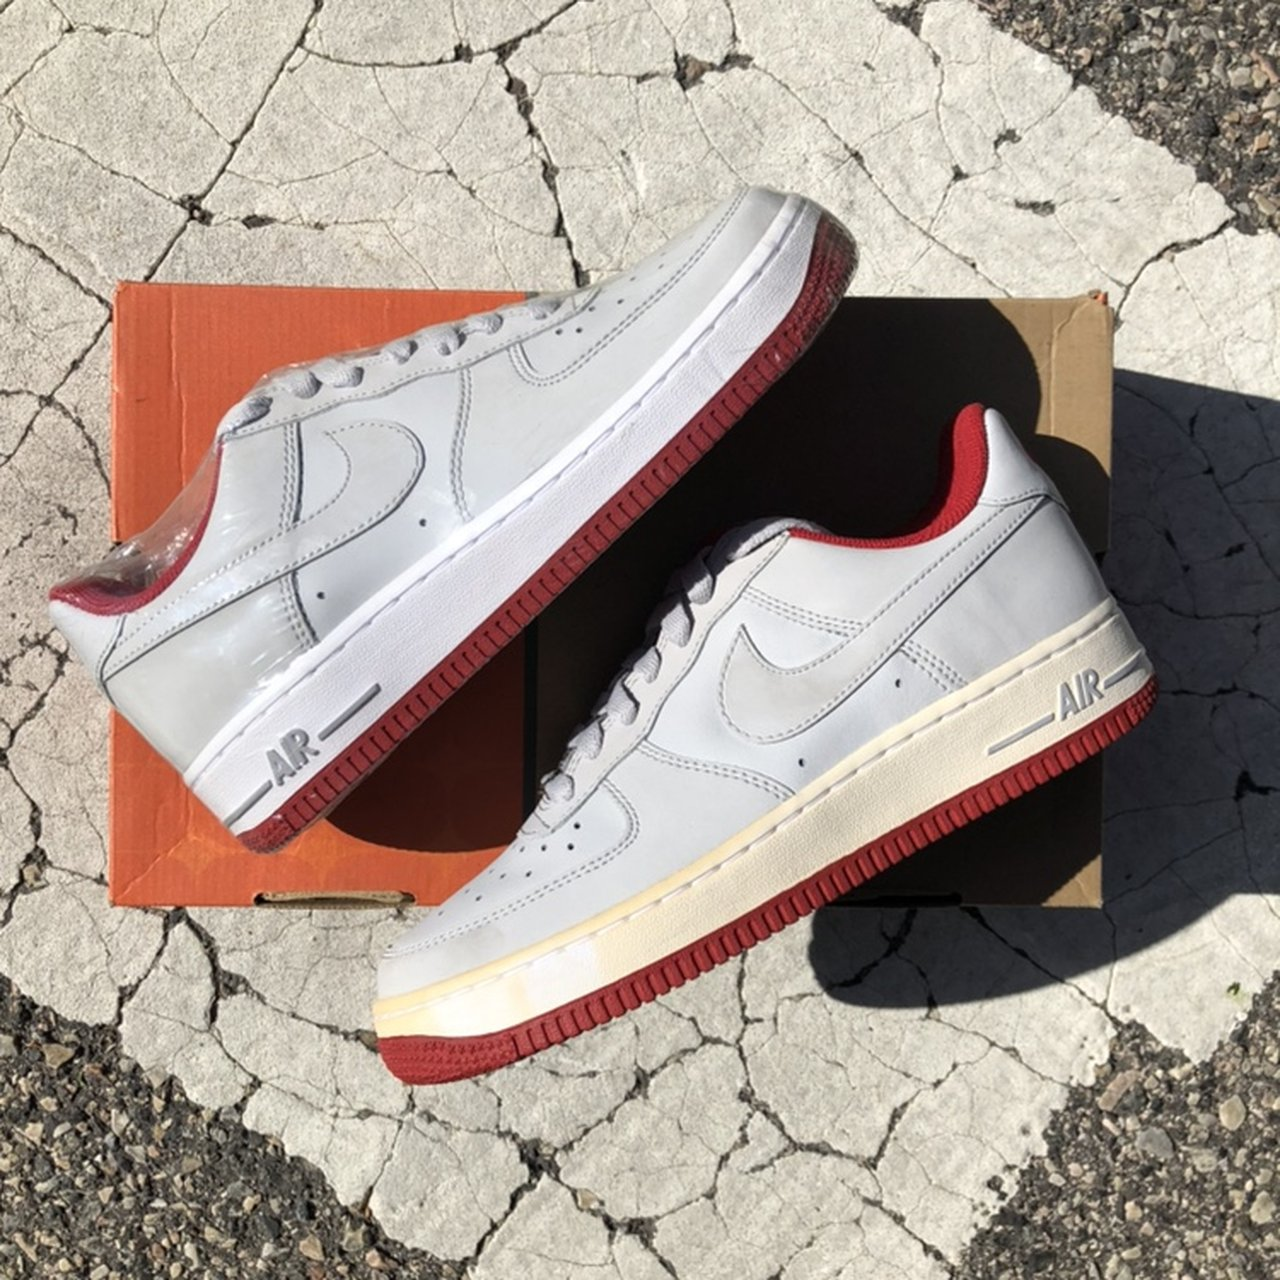 Deadstock nike air force 1. Youth size